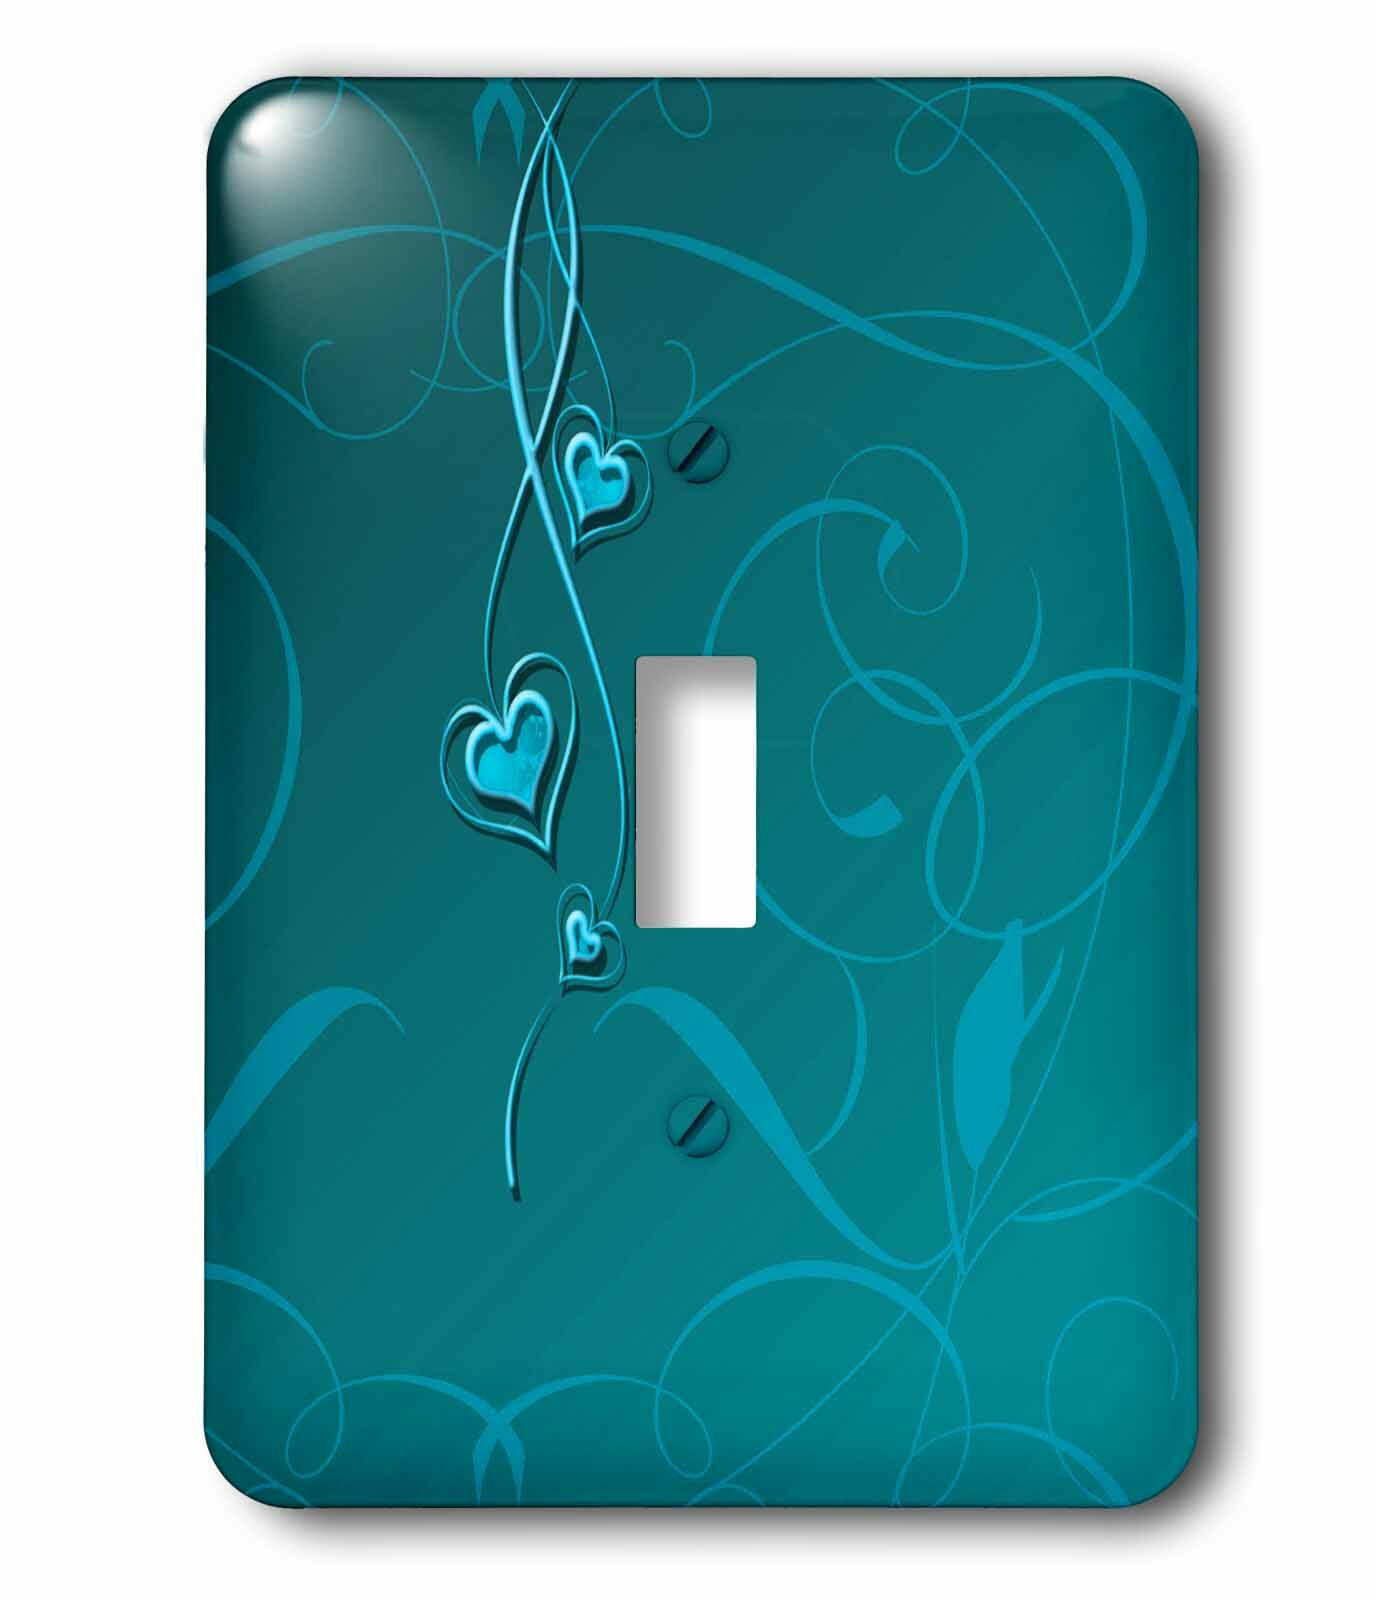 3drose Elegant Dangling Hearts On Vine 1 Gang Toggle Light Switch Wall Plate Wayfair